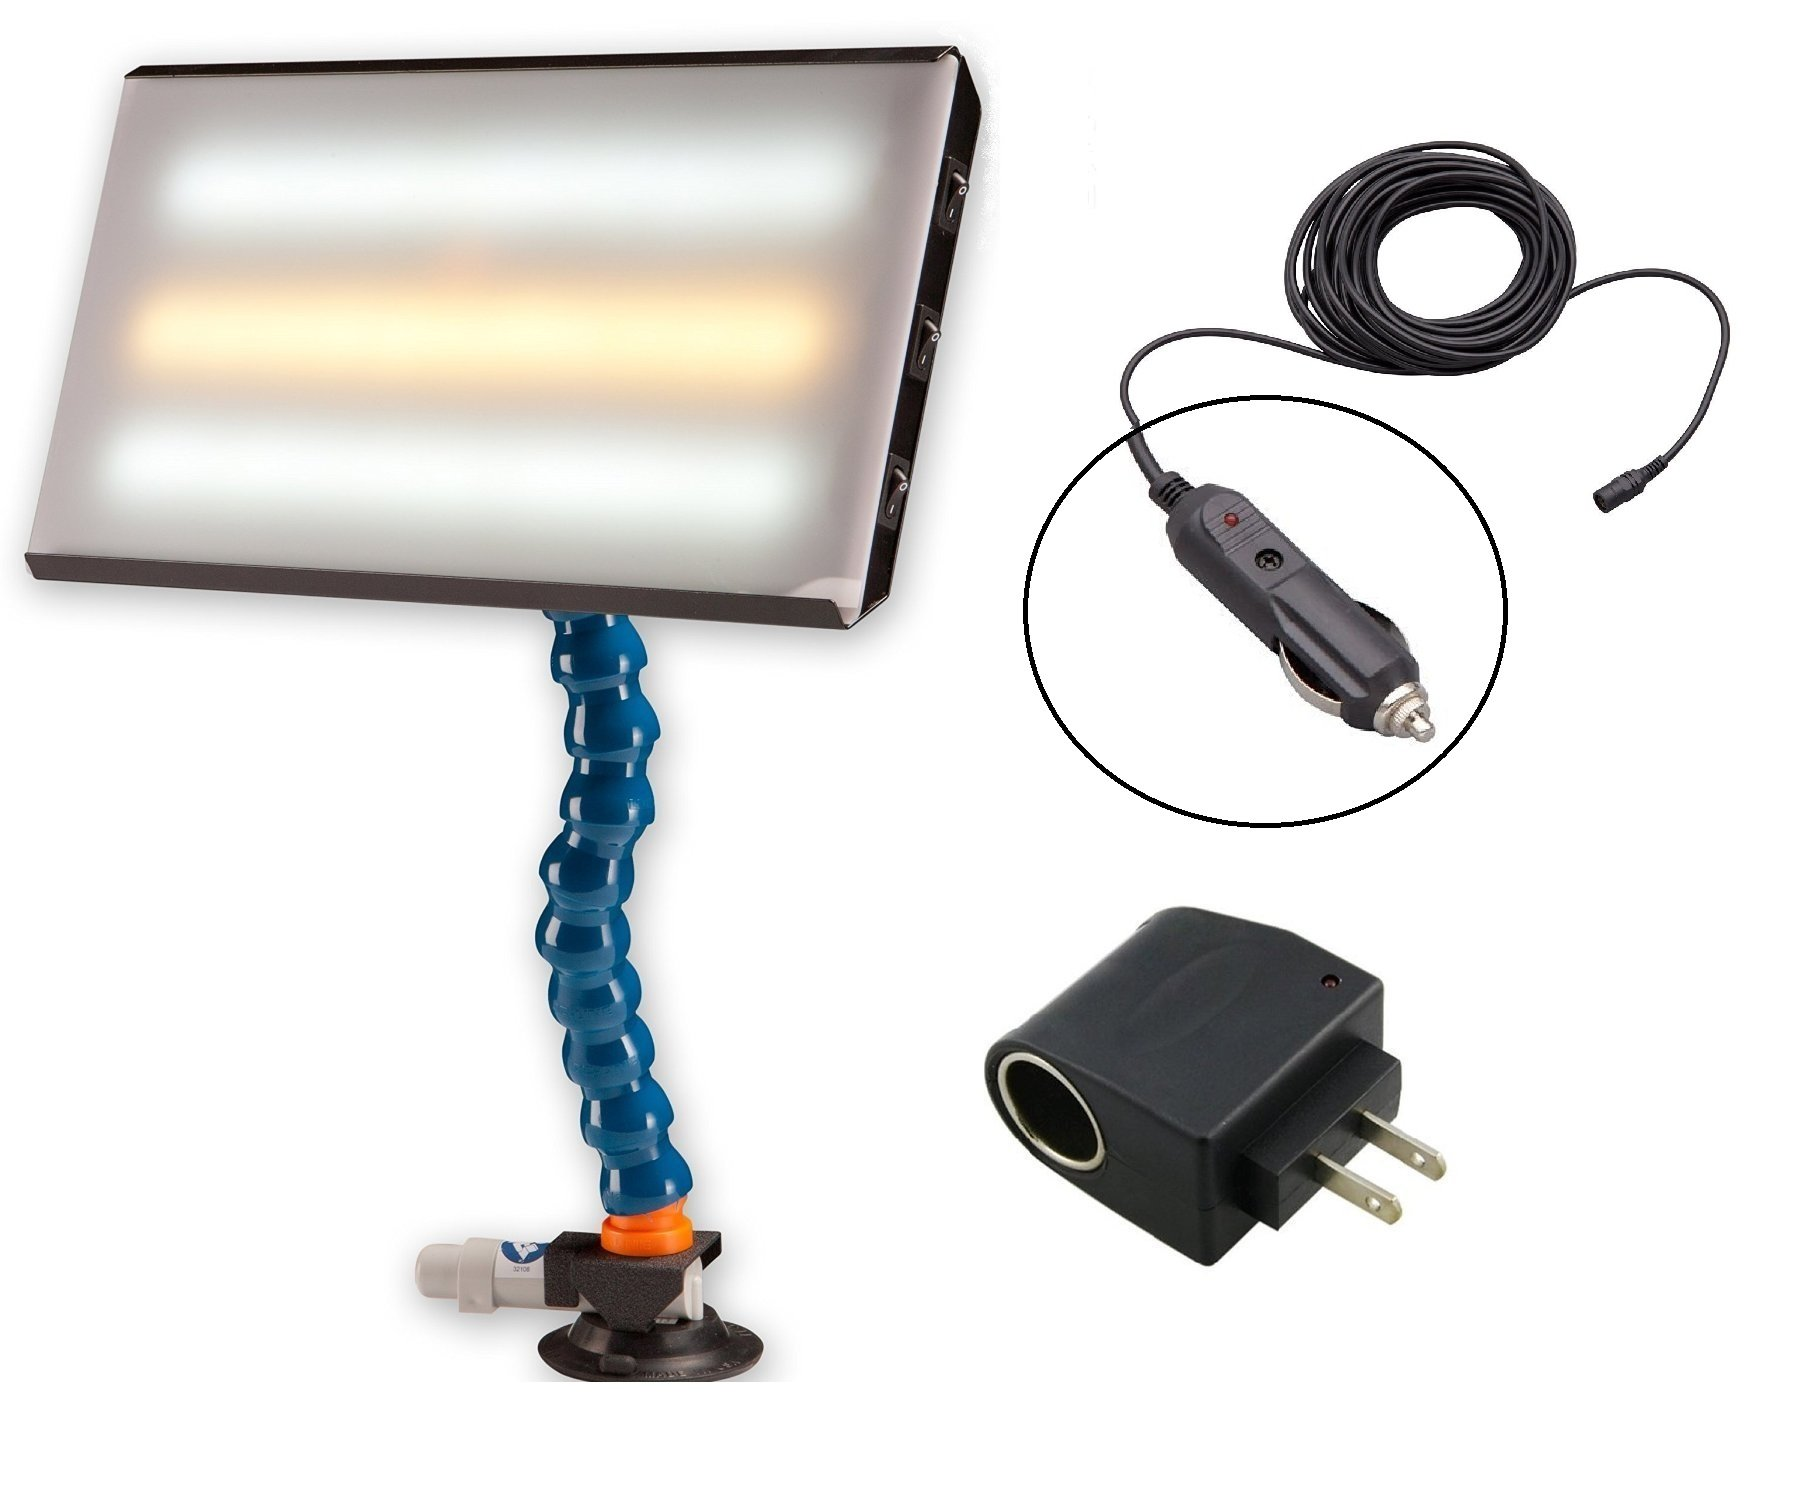 PC LED 130 PDR 13'' Portable 12V CWC LED Light with 110 Converter Paintless Dent Repair